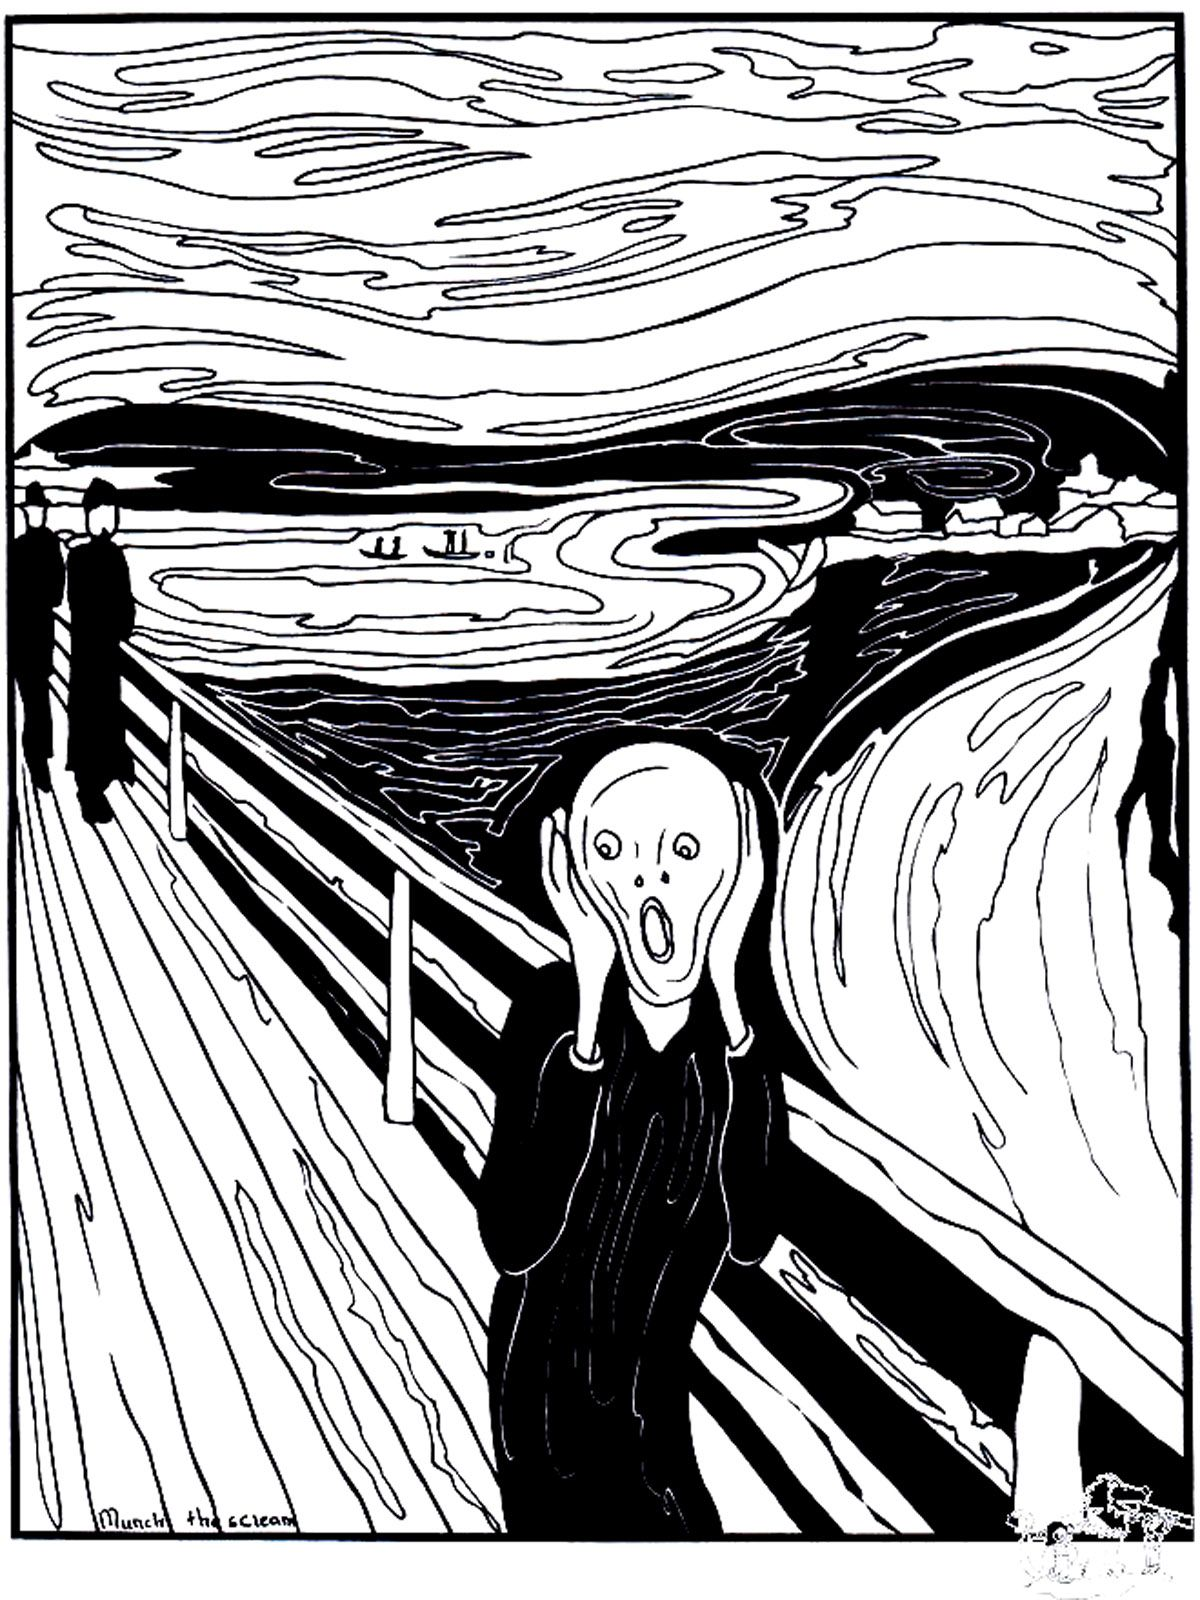 The Scream Was Painted By The Expressionist Artist Edvard